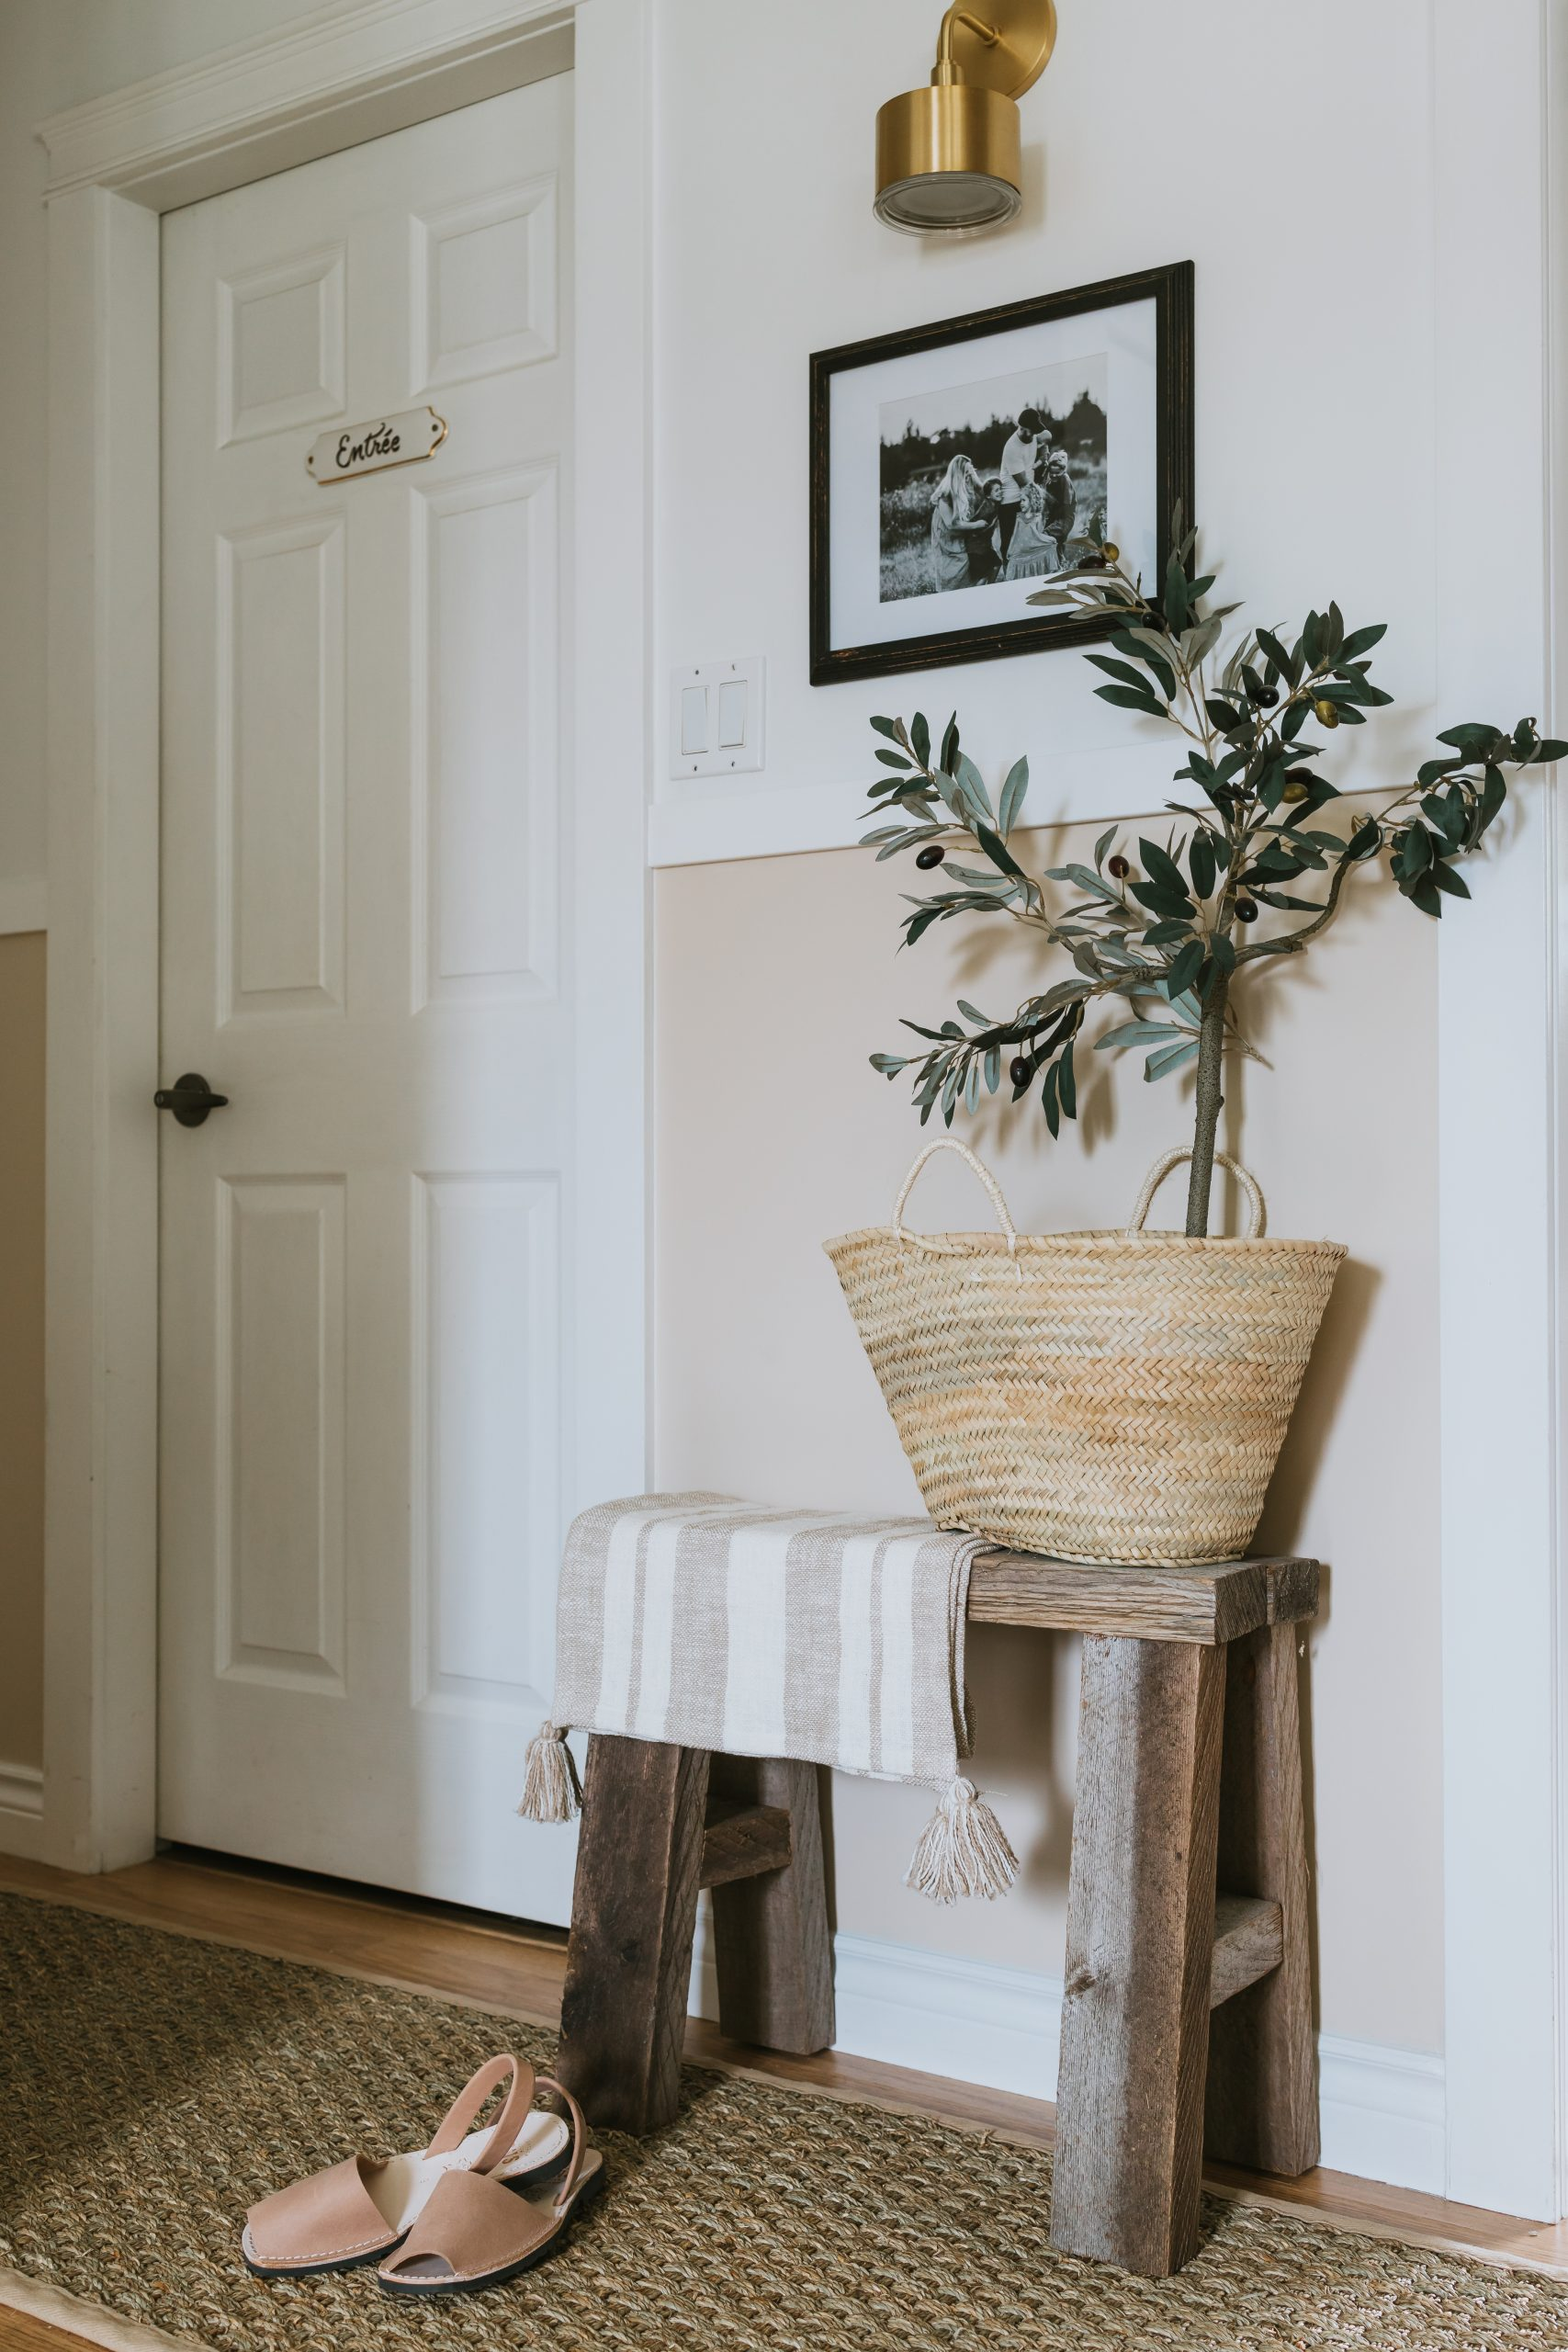 Our Narrow Hallway Makeover. How TO Transform a dark narrow hallway with no windows into a upscale and modern space with little money and time.